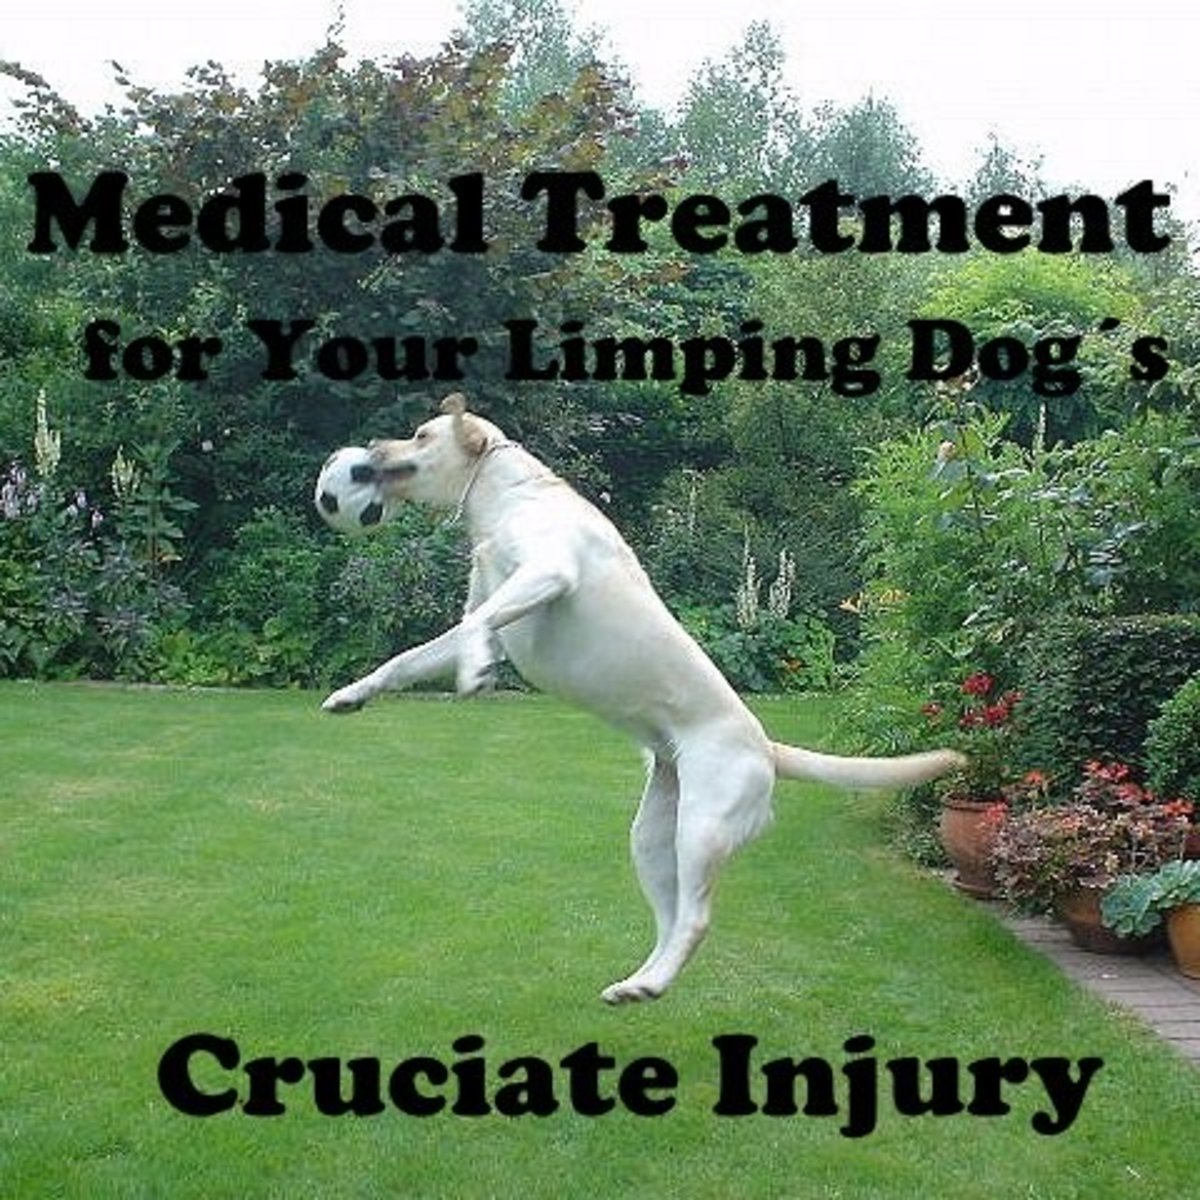 First Aid and Medical Treatment for Your Limping Dog's Damaged Cruciate Ligament (Surgery Is Not Your Only Option)